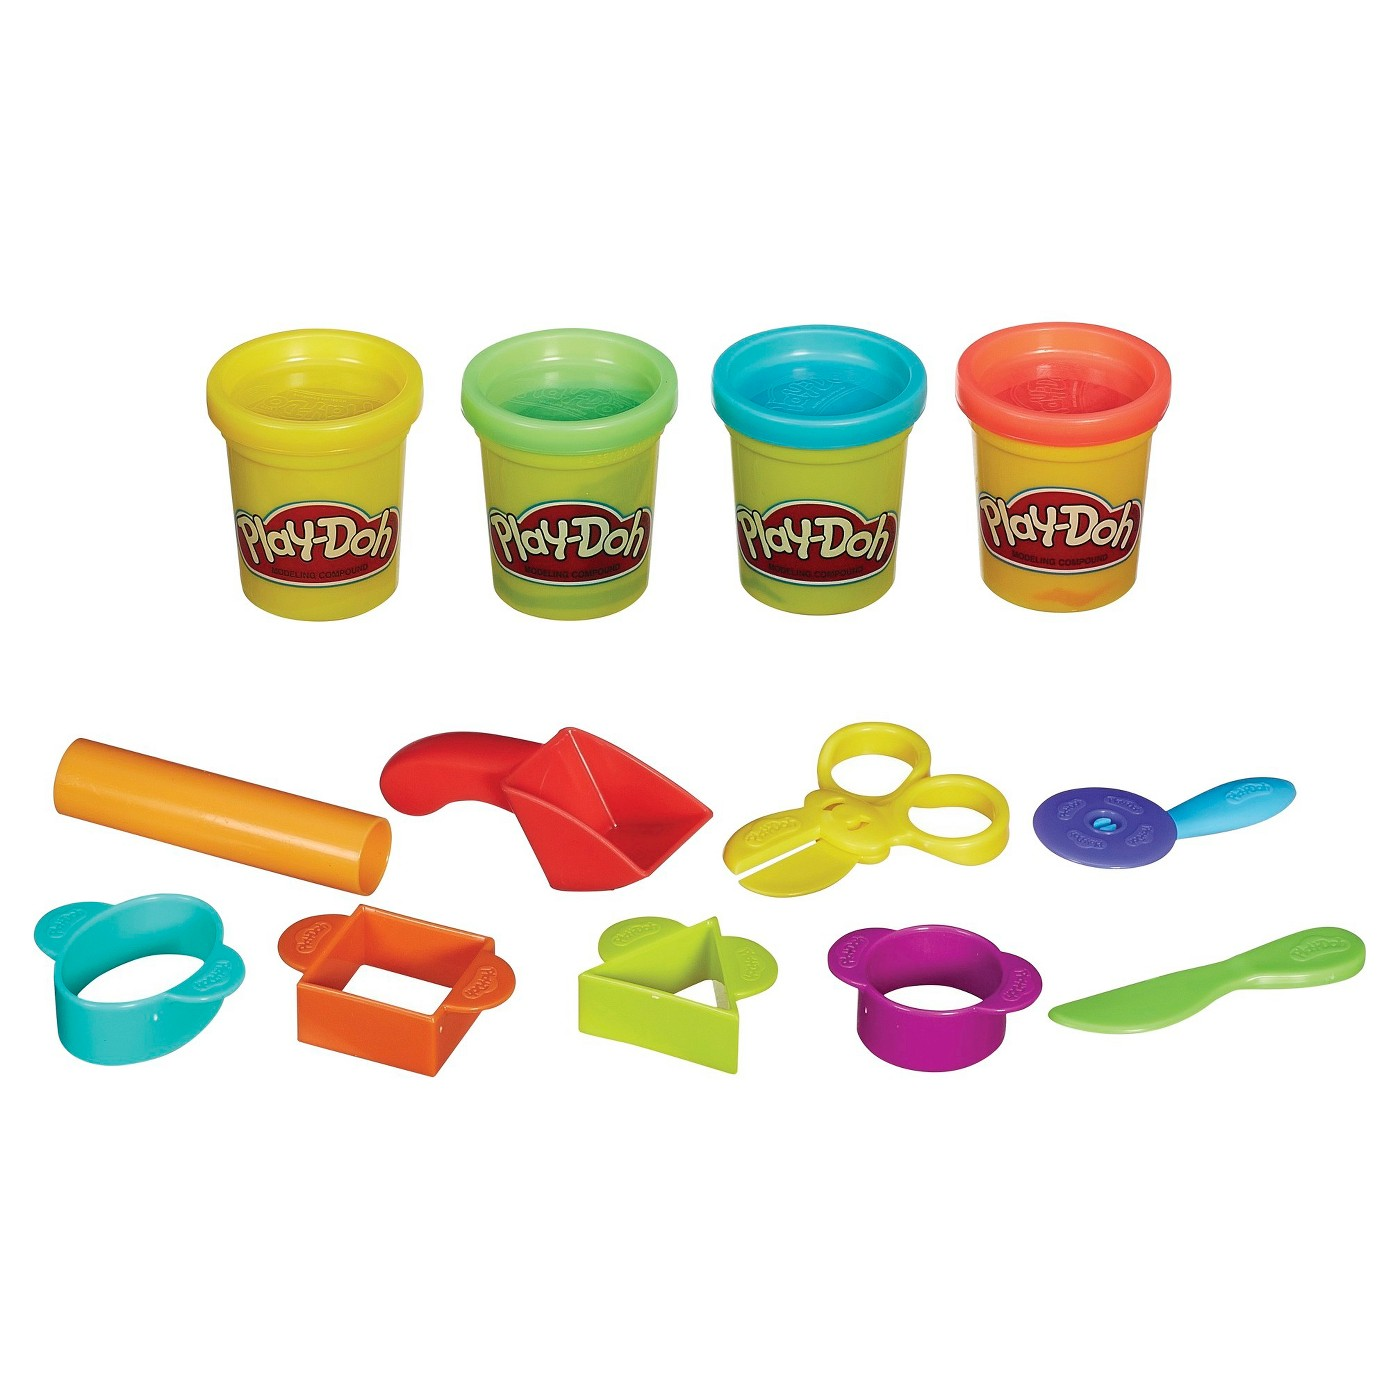 Play-Doh Starter Set - image 2 of 2